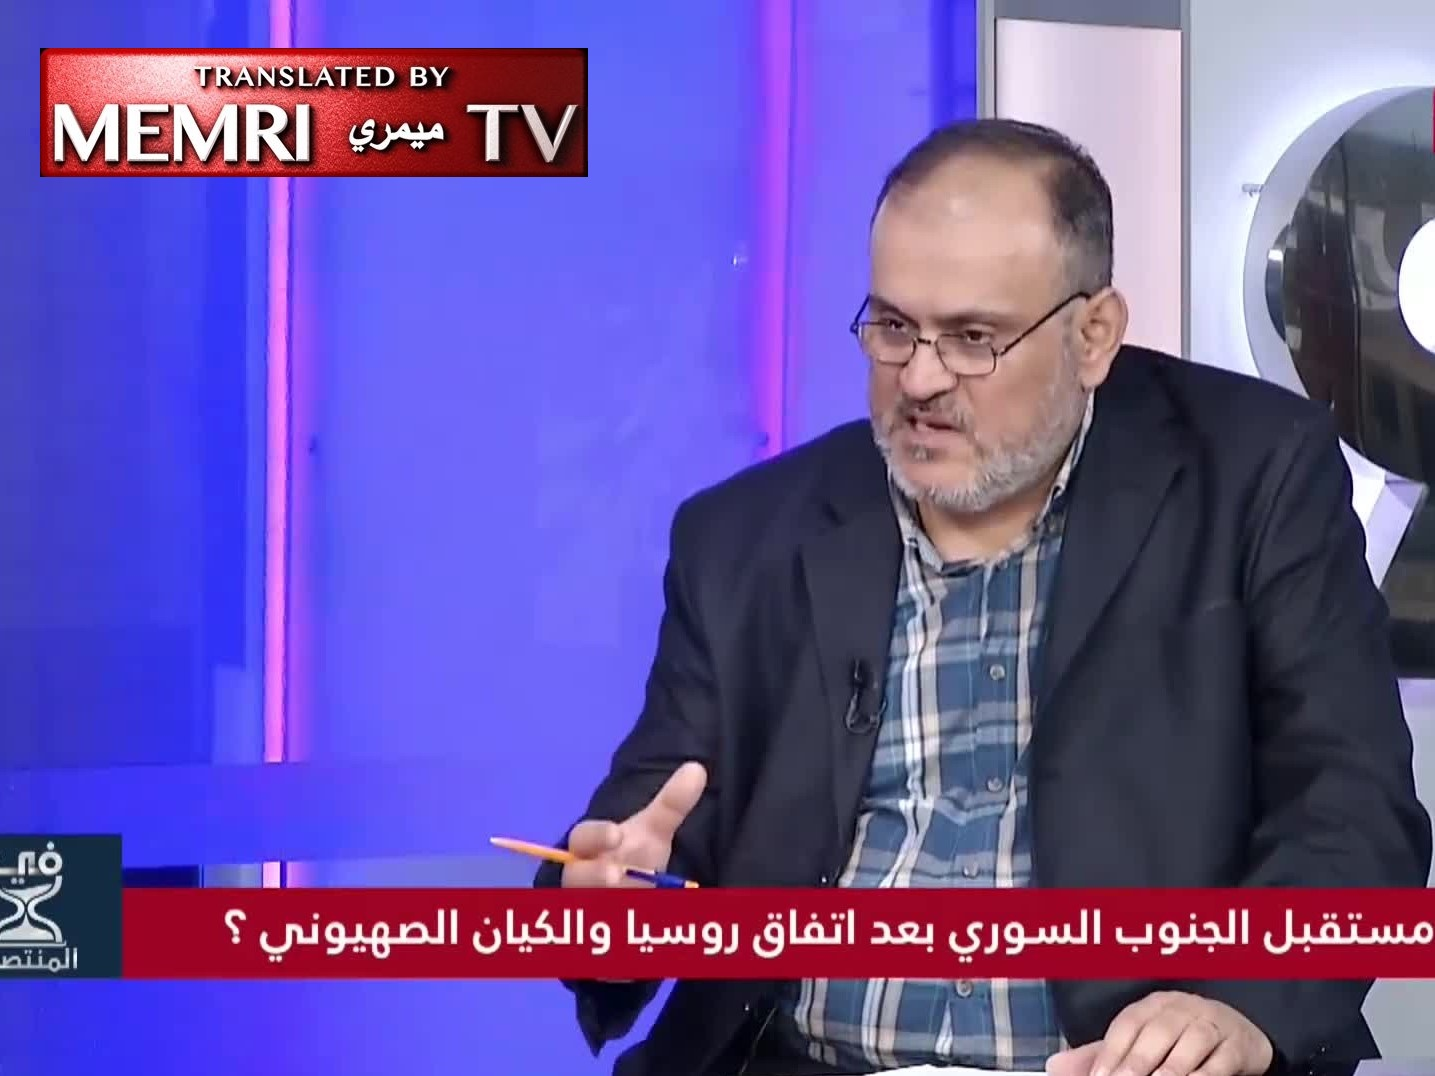 Syrian Opposition Figure Osama Al-Mallouhi: Israel Wants Al-Assad; It's As If They Want Syrian Blood for Their Passover Matzos